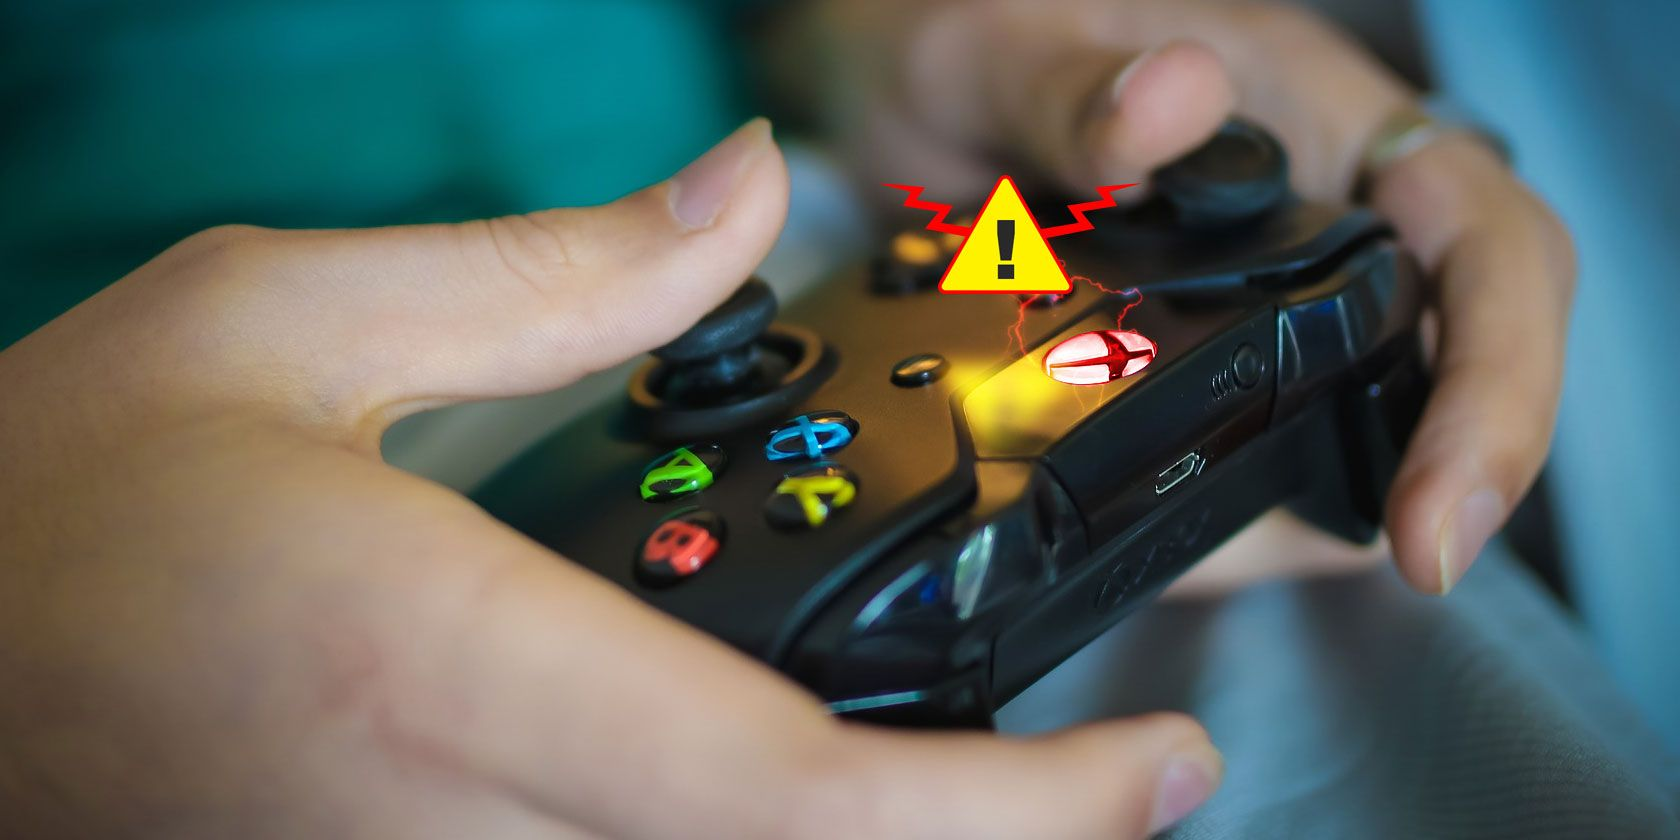 Xbox One Controller Not Working? 4 Tips on How to Fix It!